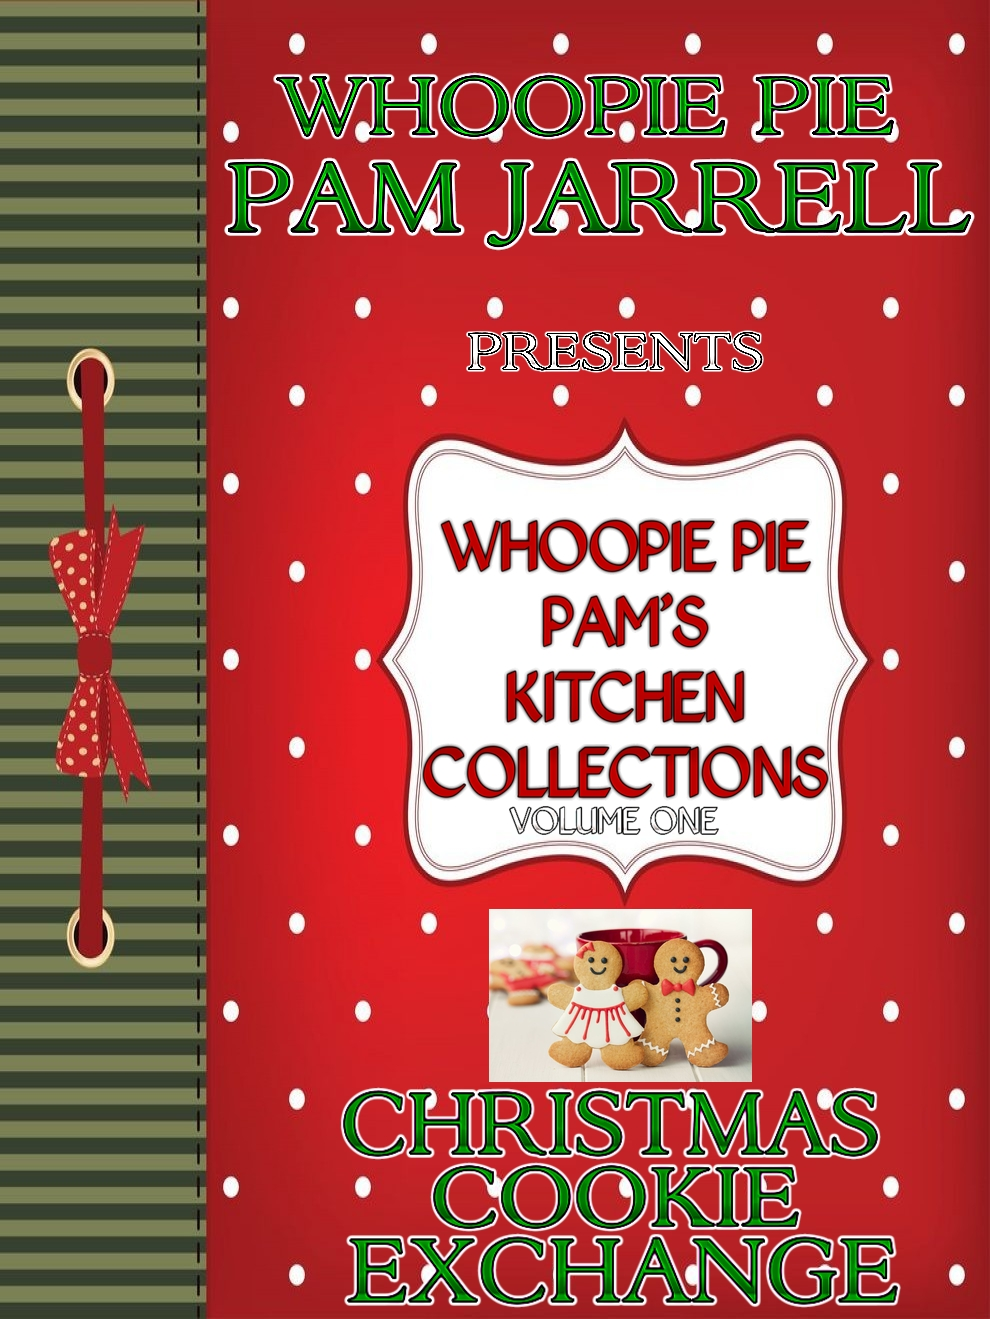 Whoopie Pie Pam's Kitchen Collections - Volume 1 - Christmas Cookie Exchange By: Whoopie Pie Pam Jarrell